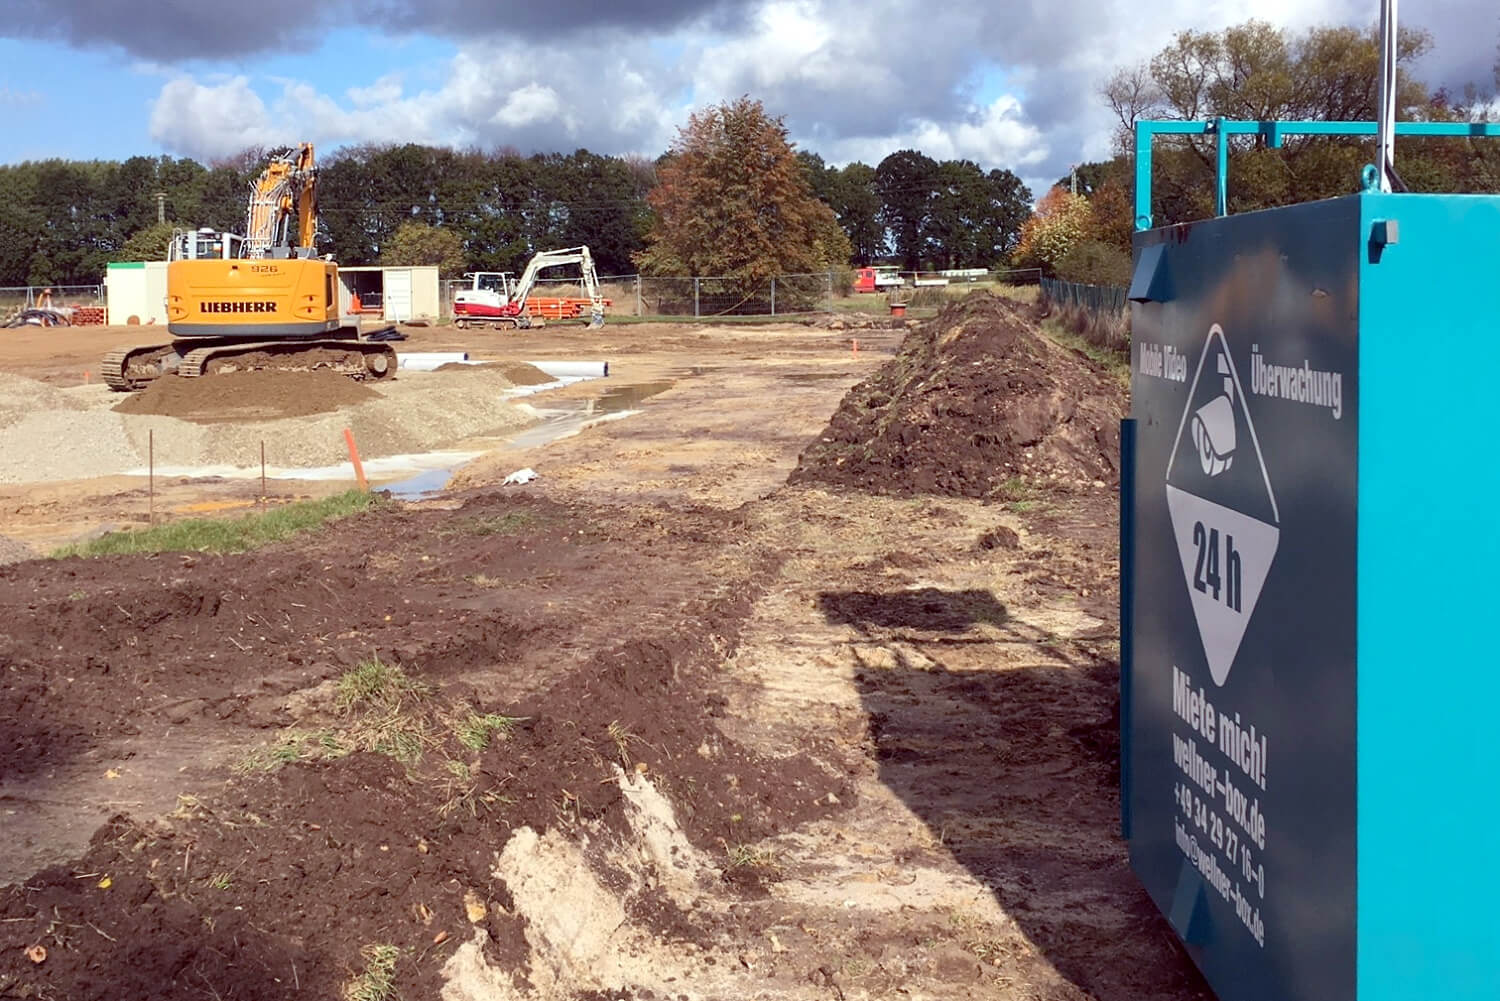 The new postal distribution centre is being built. The WellnerBOX provides security.